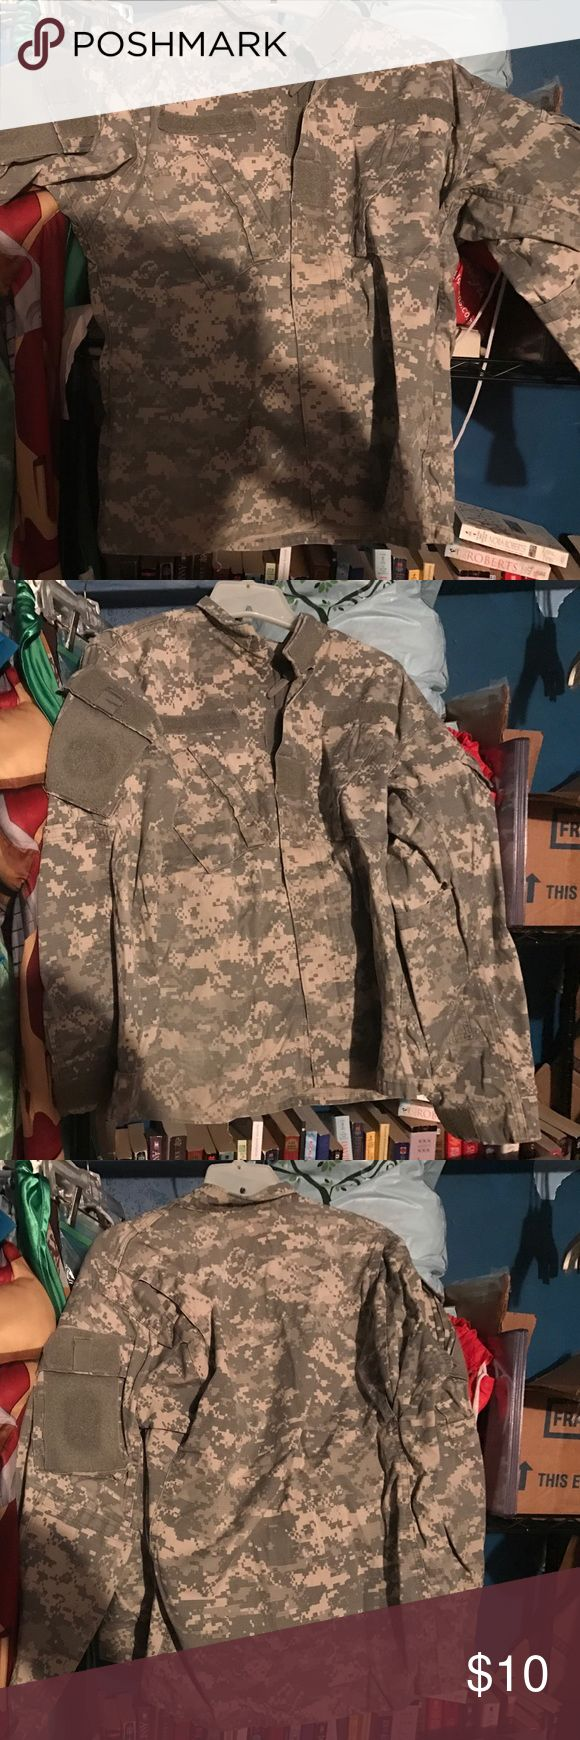 Acu military top This top is in excellent condition. The zippers and Velcro work Jackets & Coats Military & Field